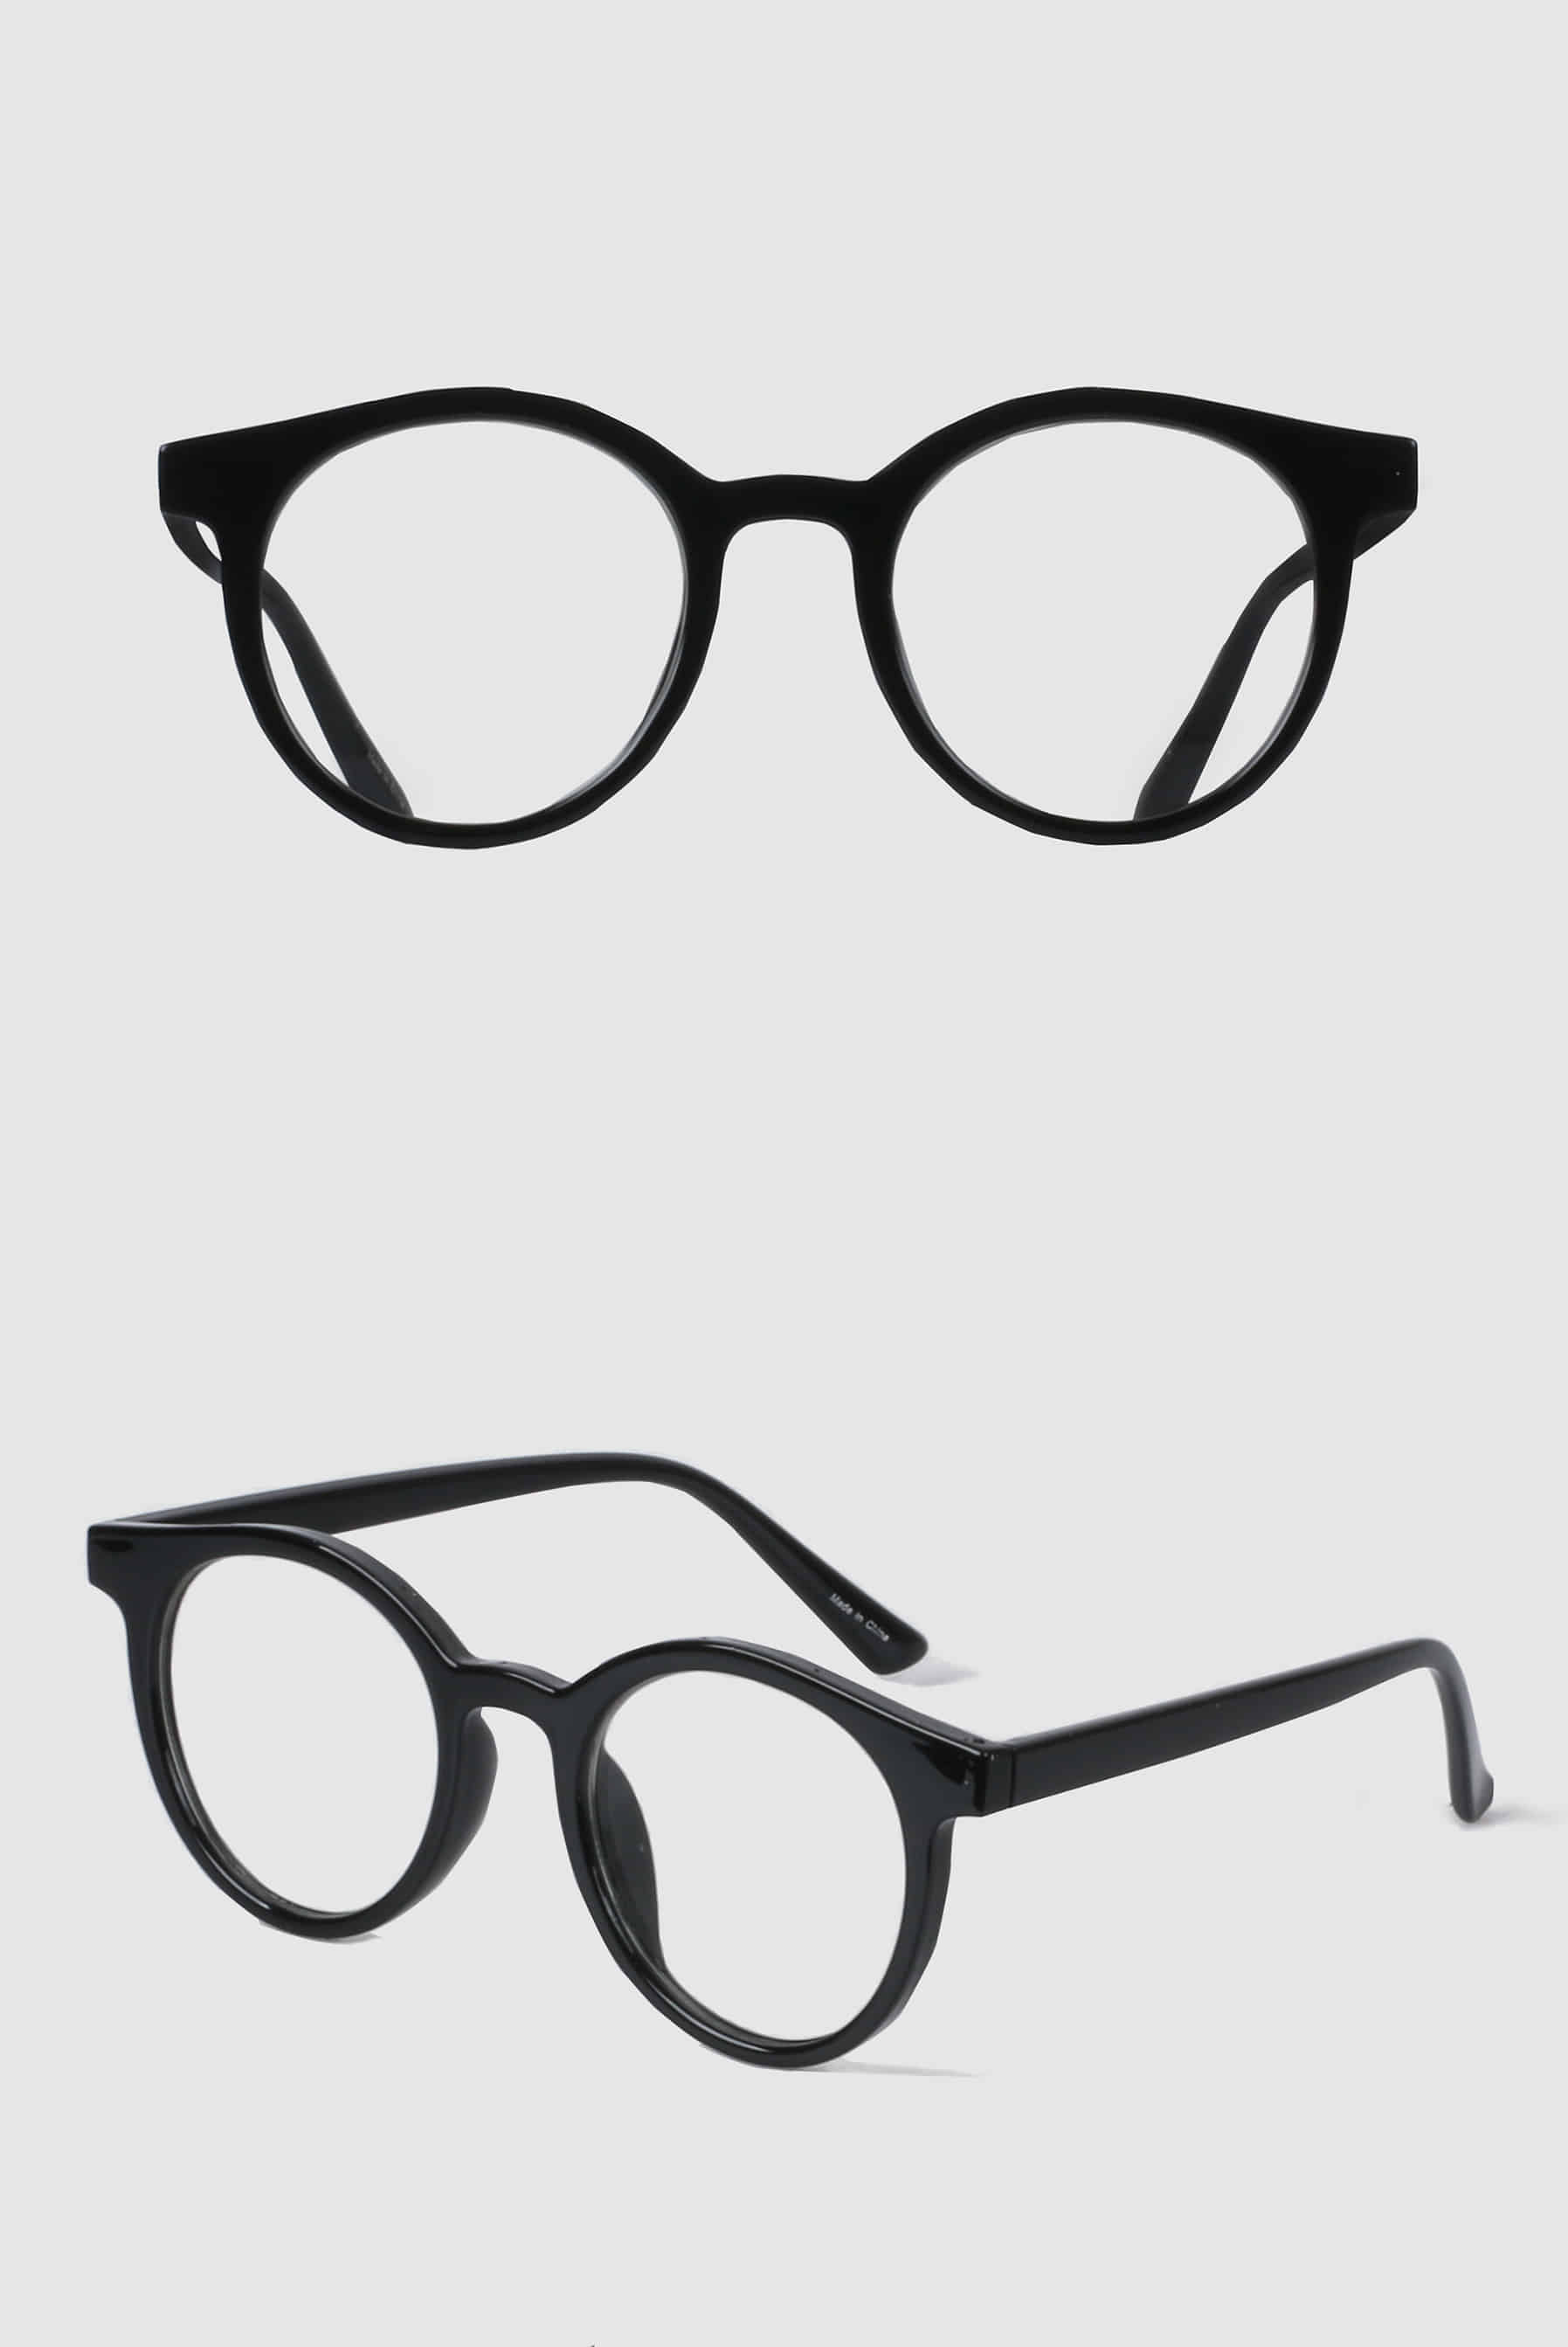 Simple_Frame Glasses